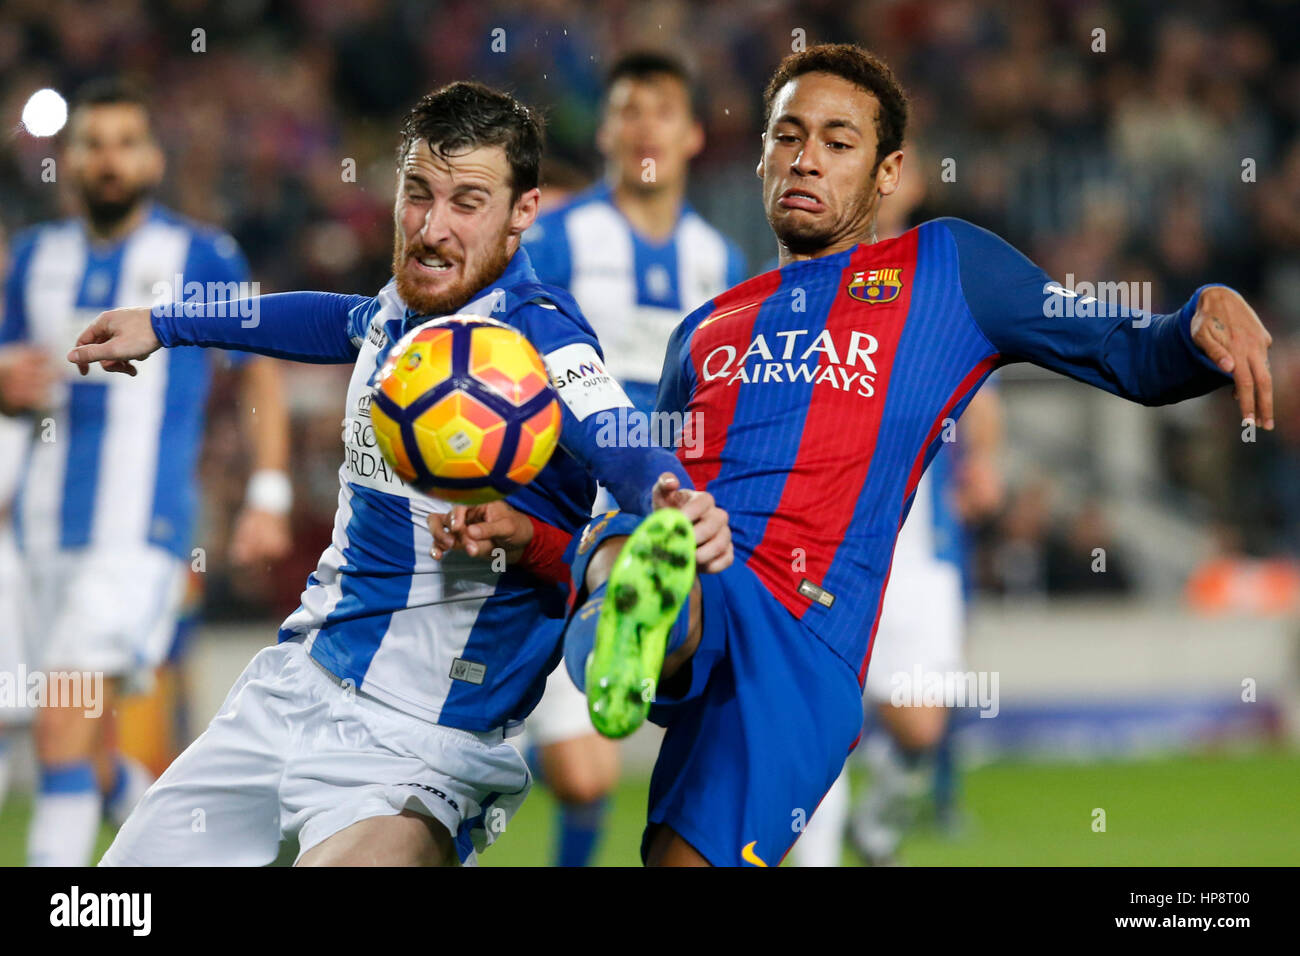 Barcelona, Spain. 19th Feb, 2017. Barcelona's Neymar (R) vies with Leganes' Tito during the Spanish first - Stock Image